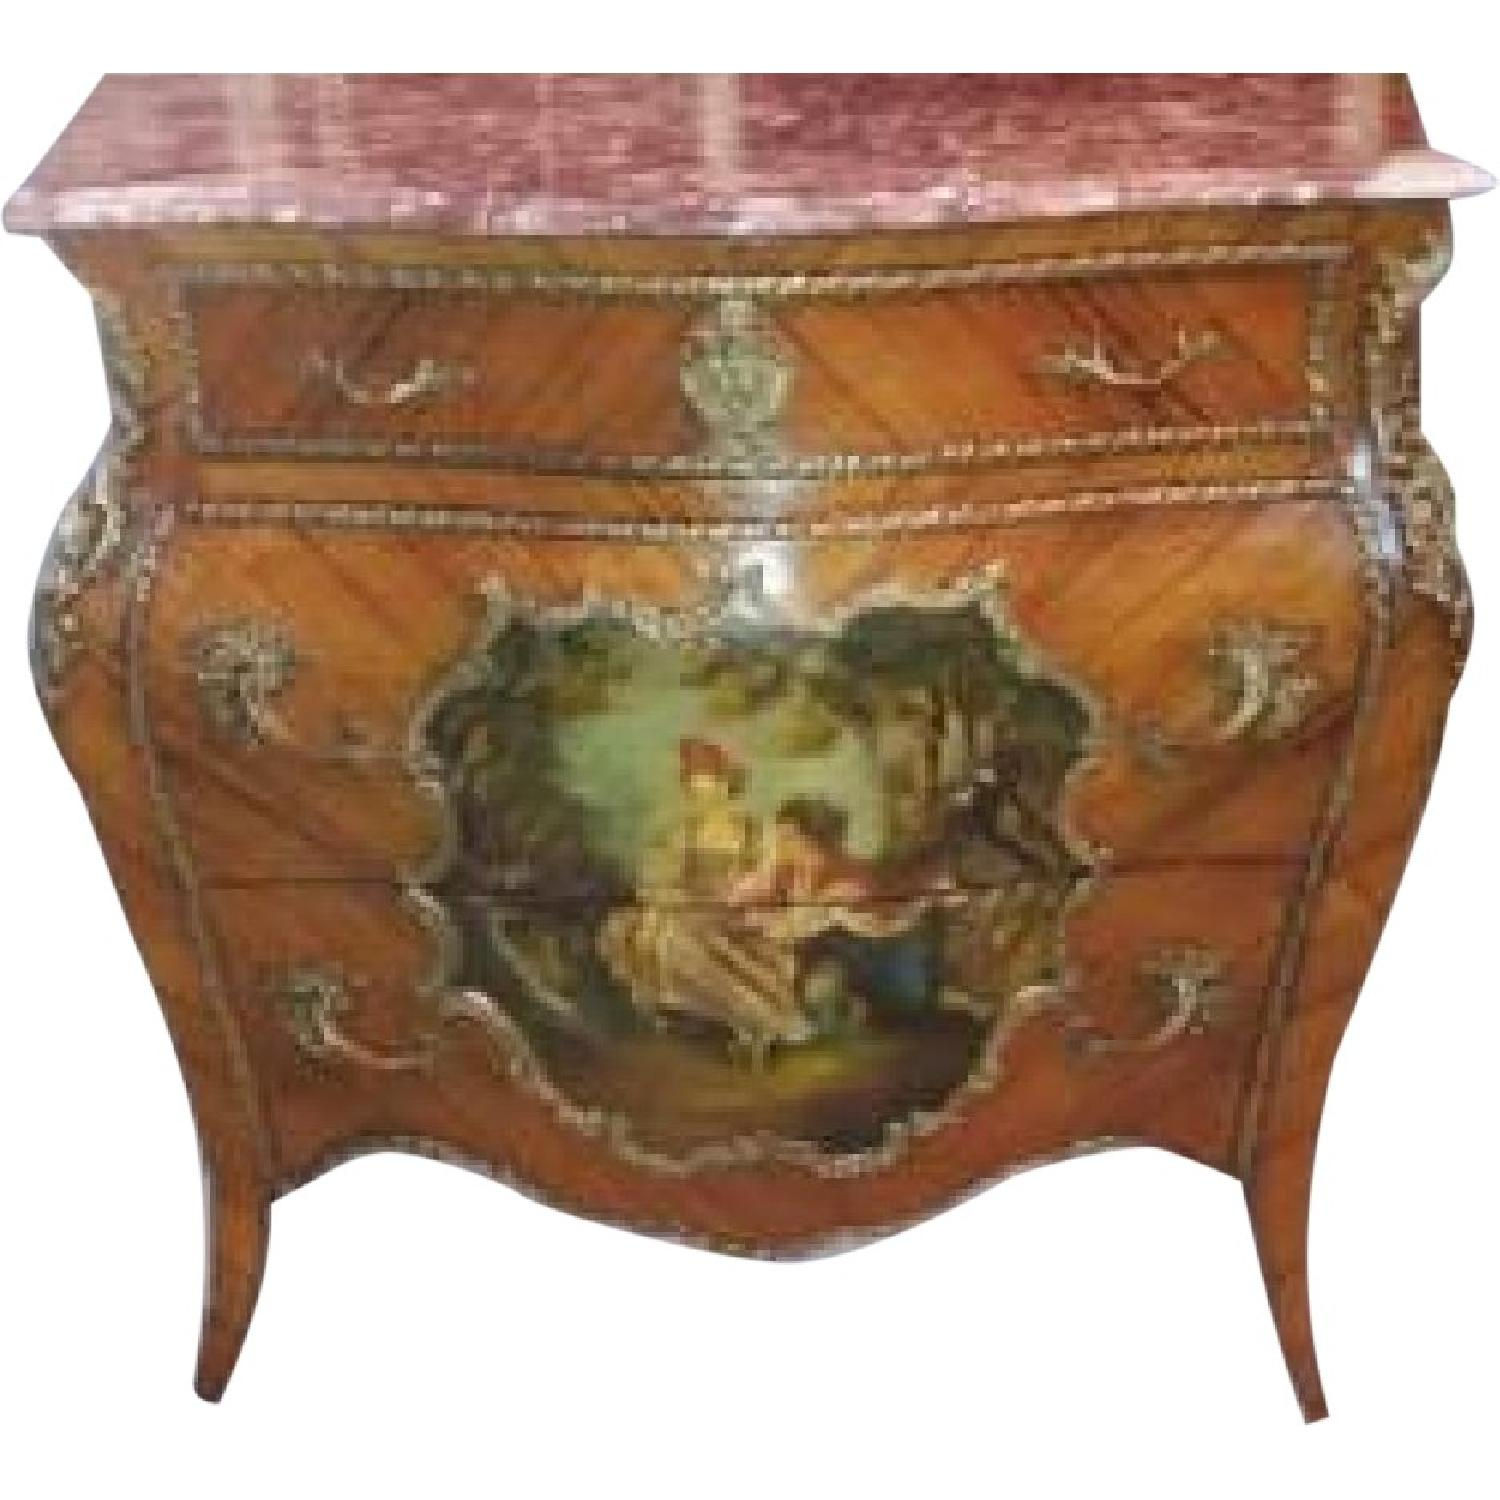 Antique 1880 French Louis XVI Commode/Chest of Drawers - image-0